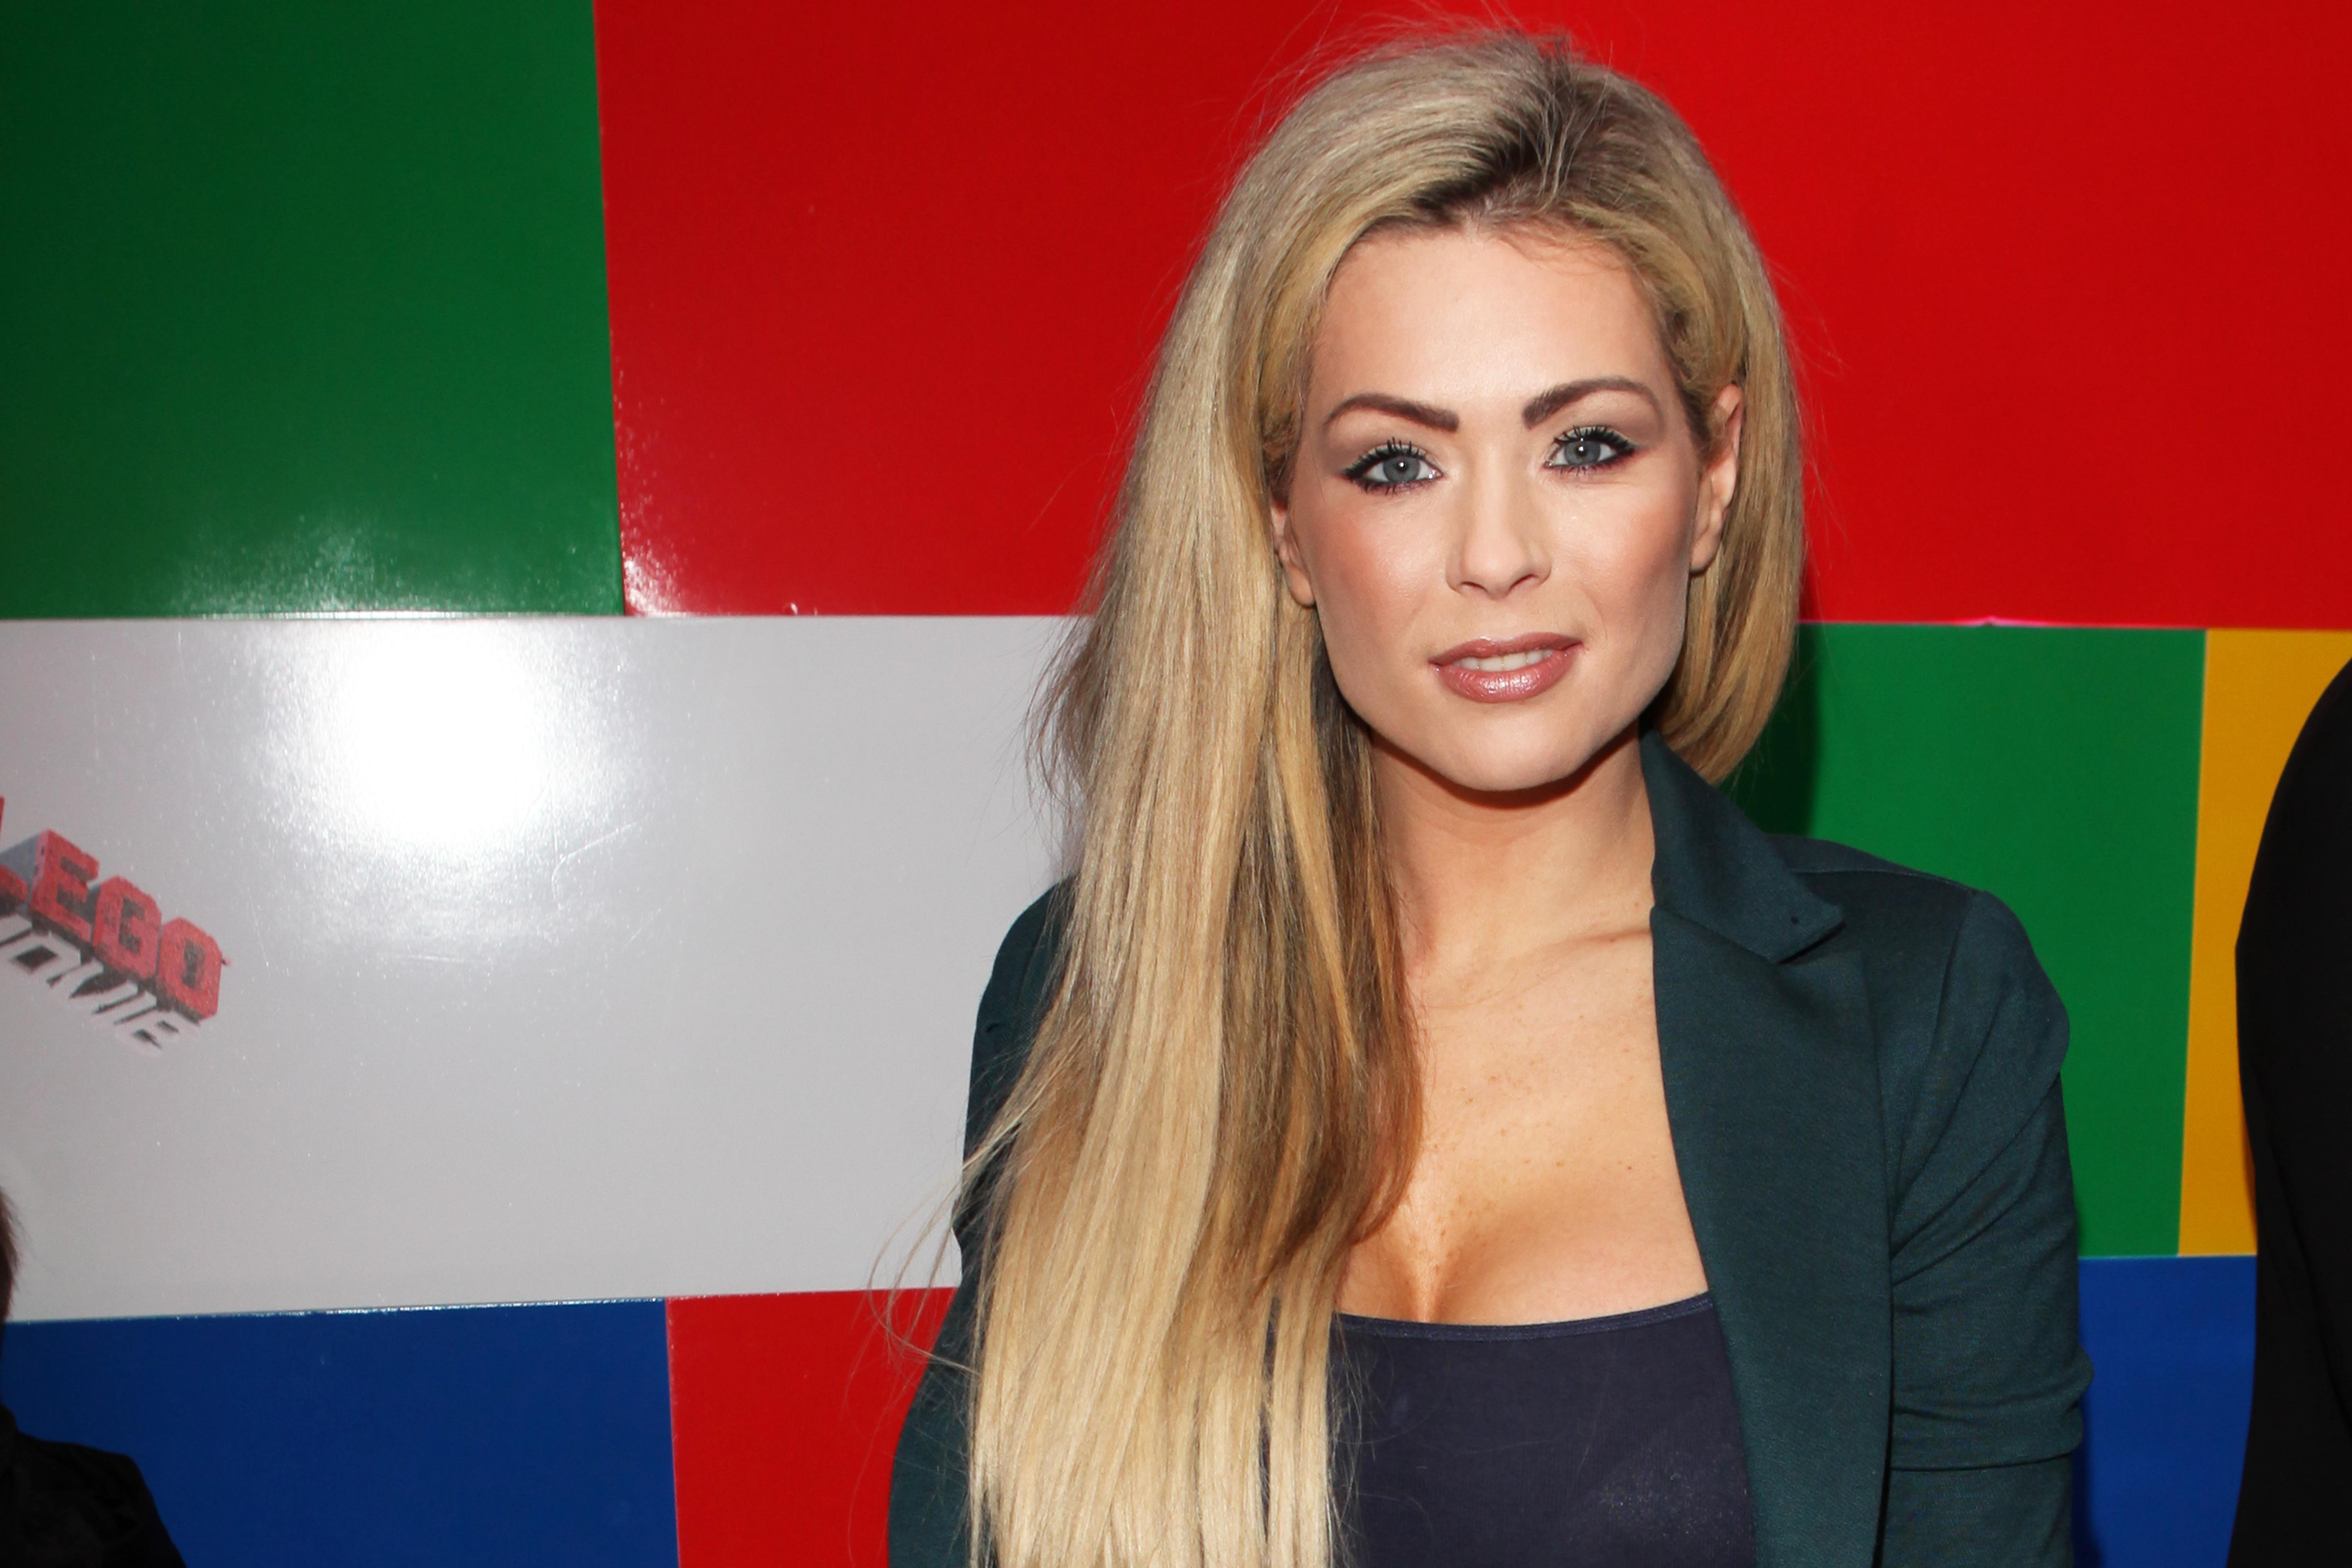 """Nicola McLean seen at the UK screening of """"The Lego Movie - The Awesome"""" on Sunday, February 9th 2014 in London, UK. (Photo by Jon Furniss/Invision AP Images)"""